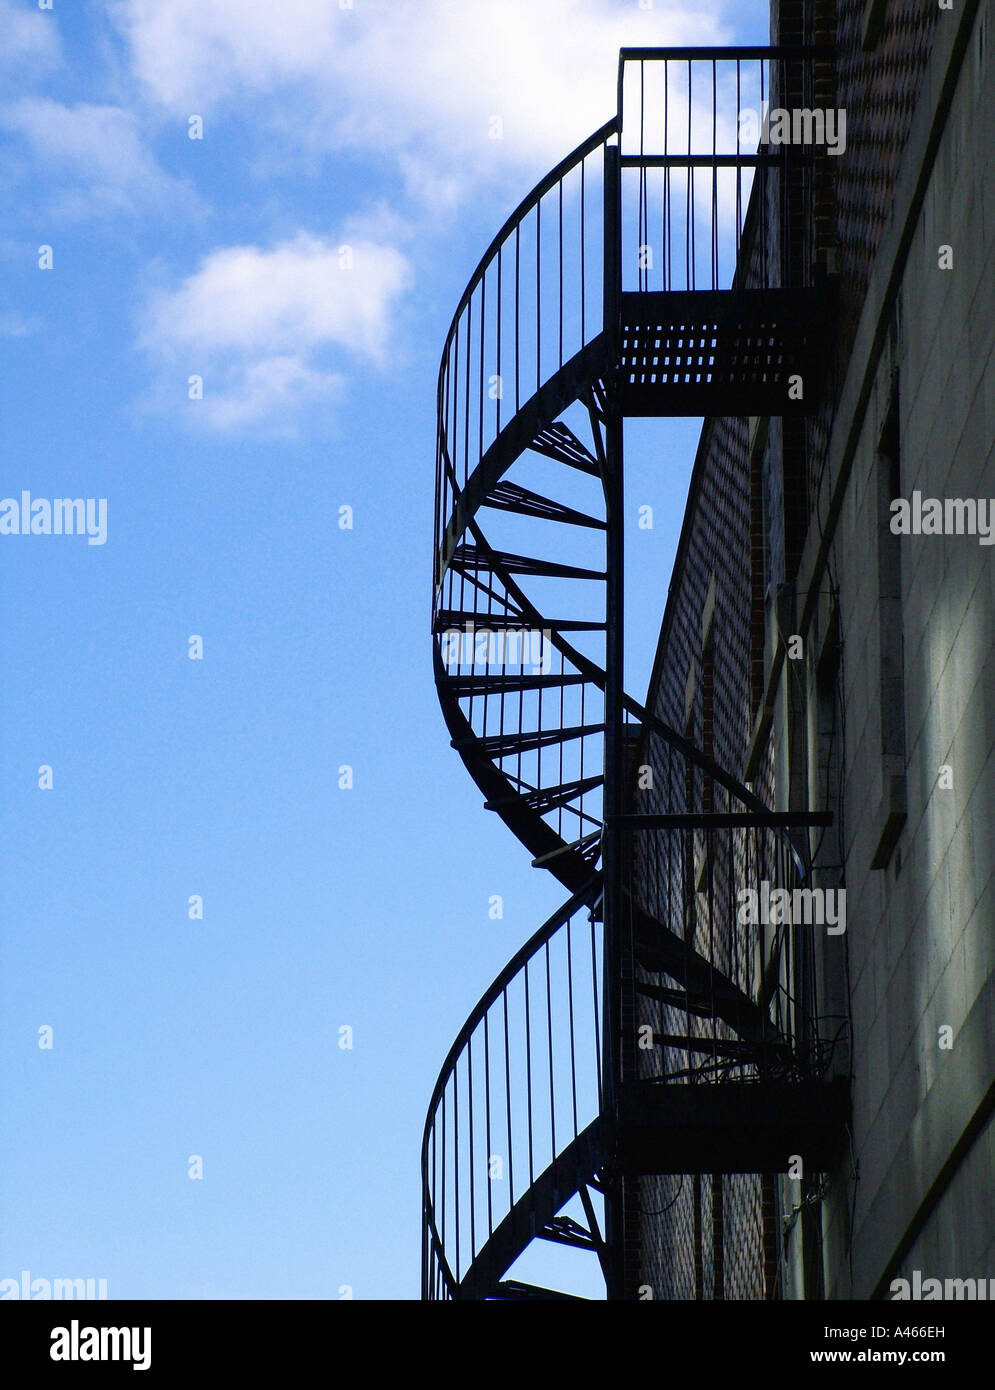 Spiraling fire escape with blue sky background - Stock Image